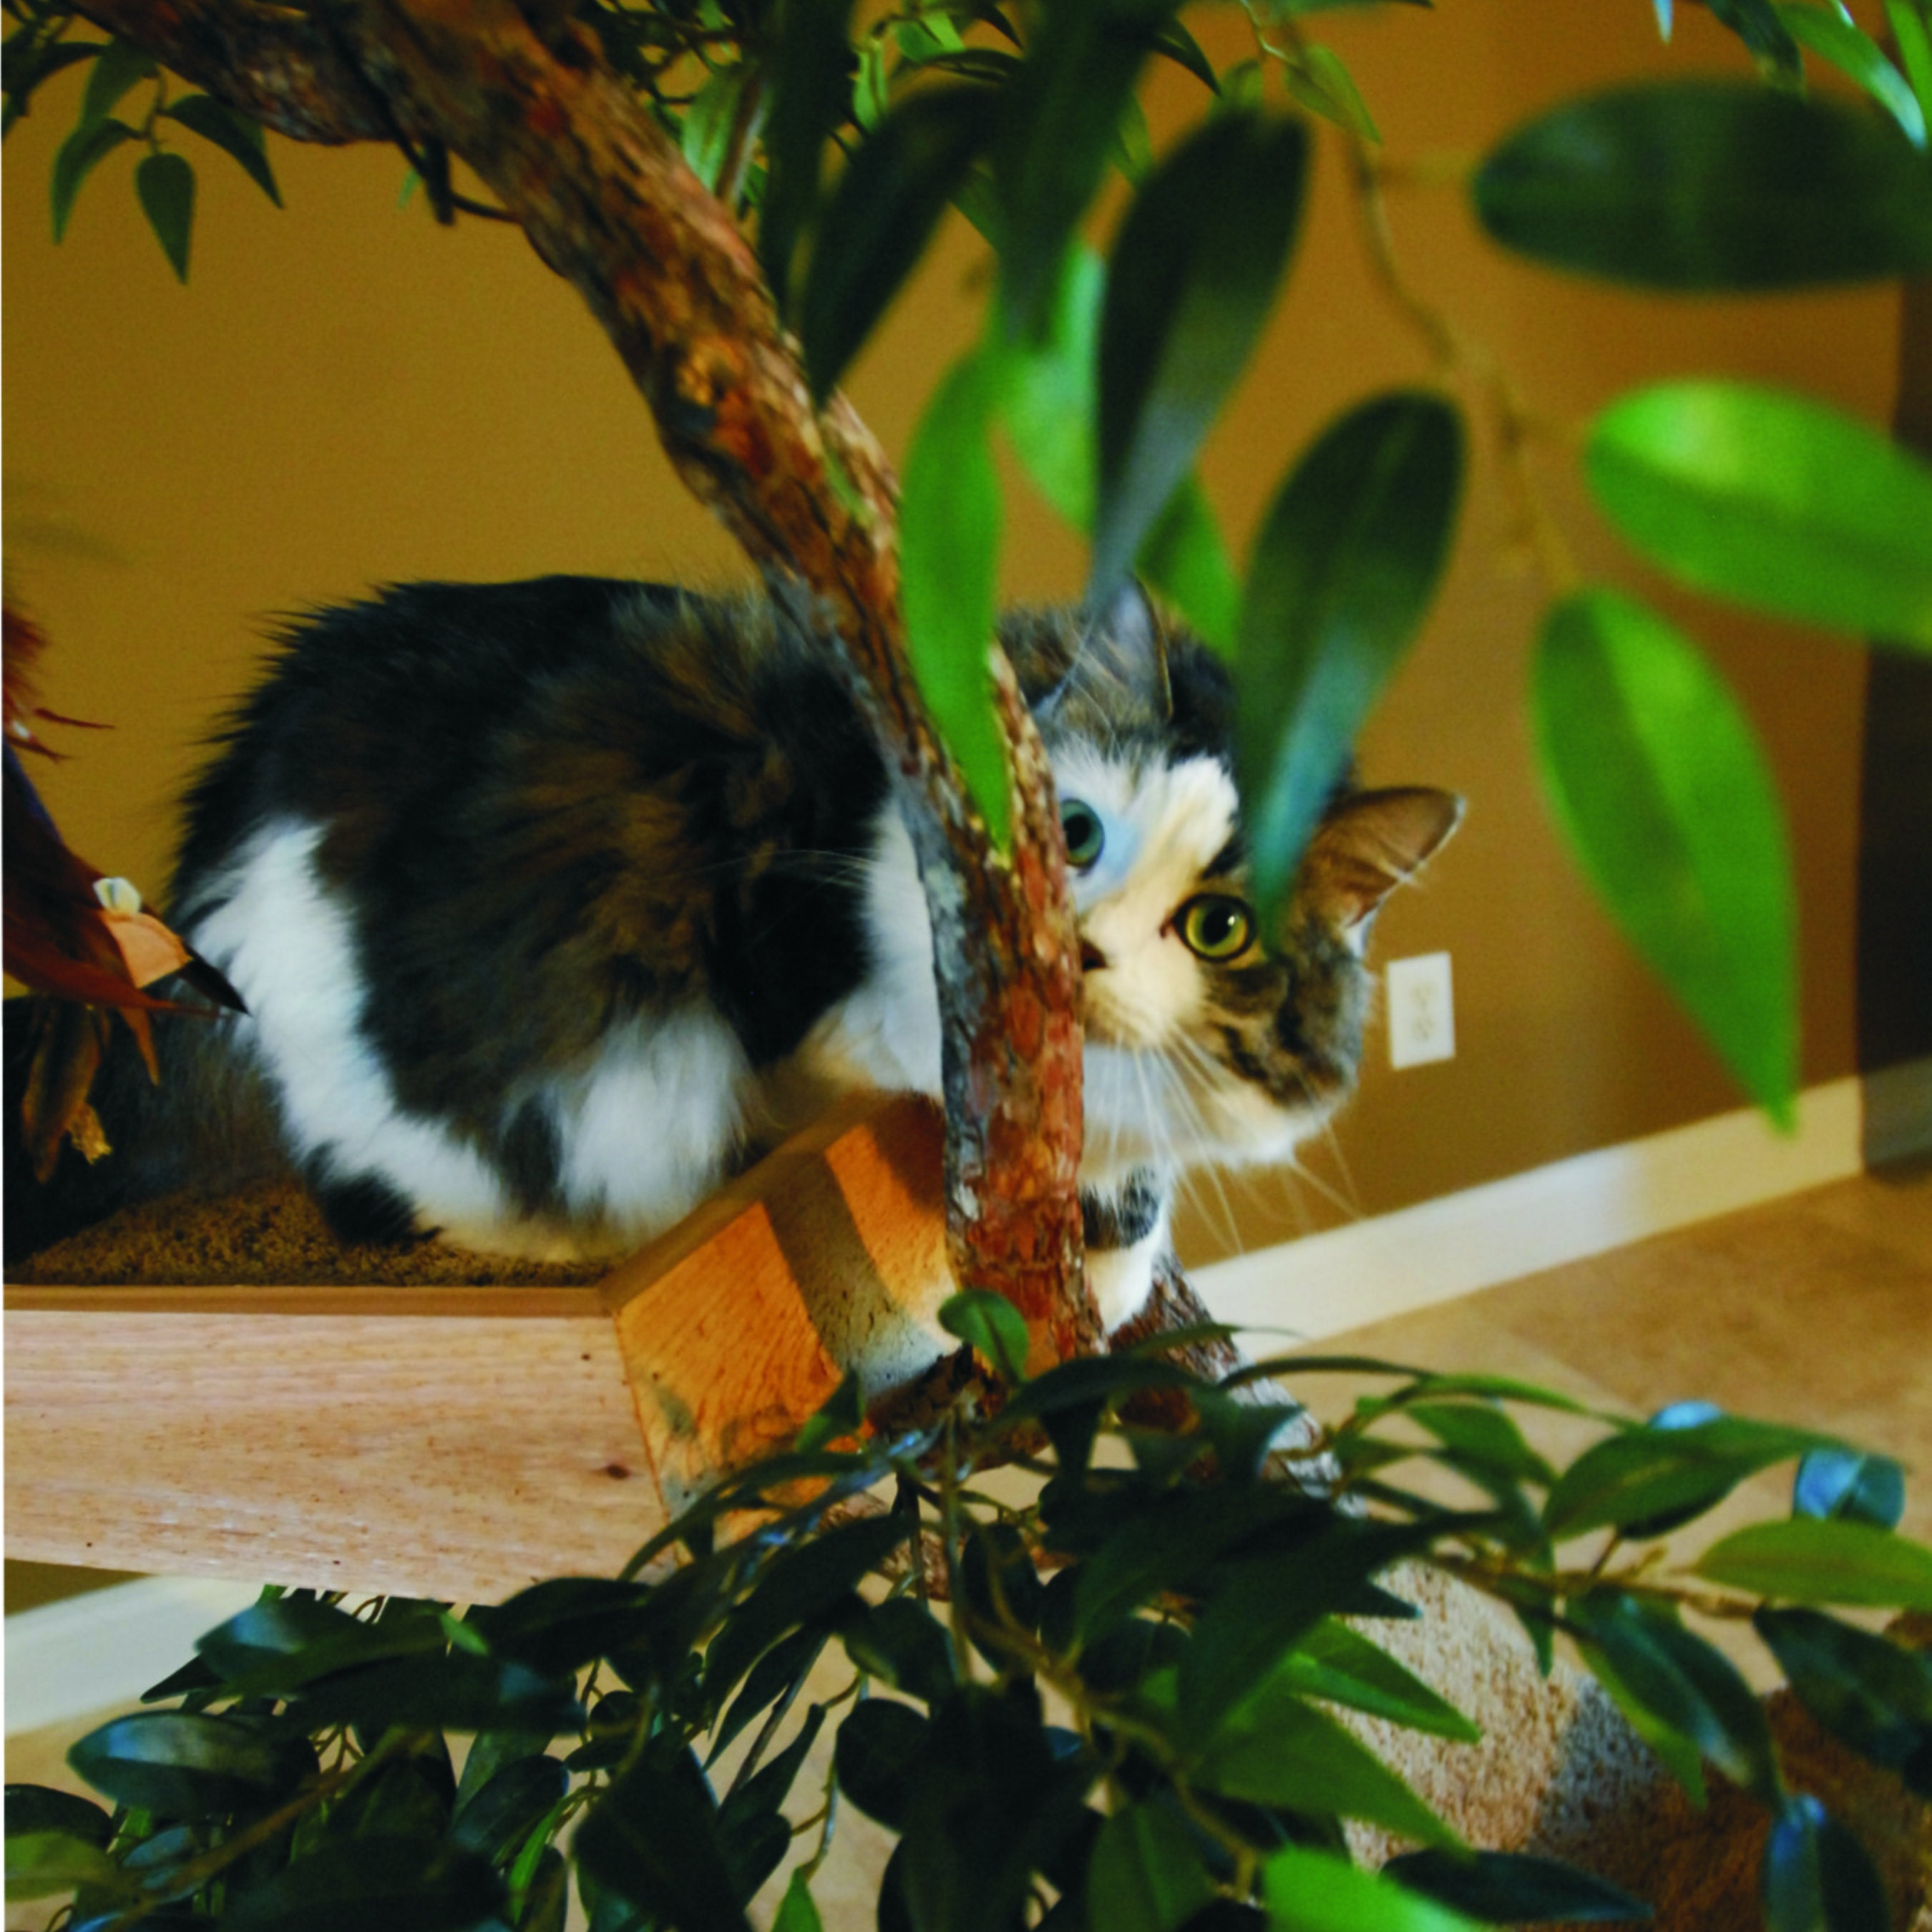 Purrveyors of Natural Feline Fun by PetTreeHouses on Etsy